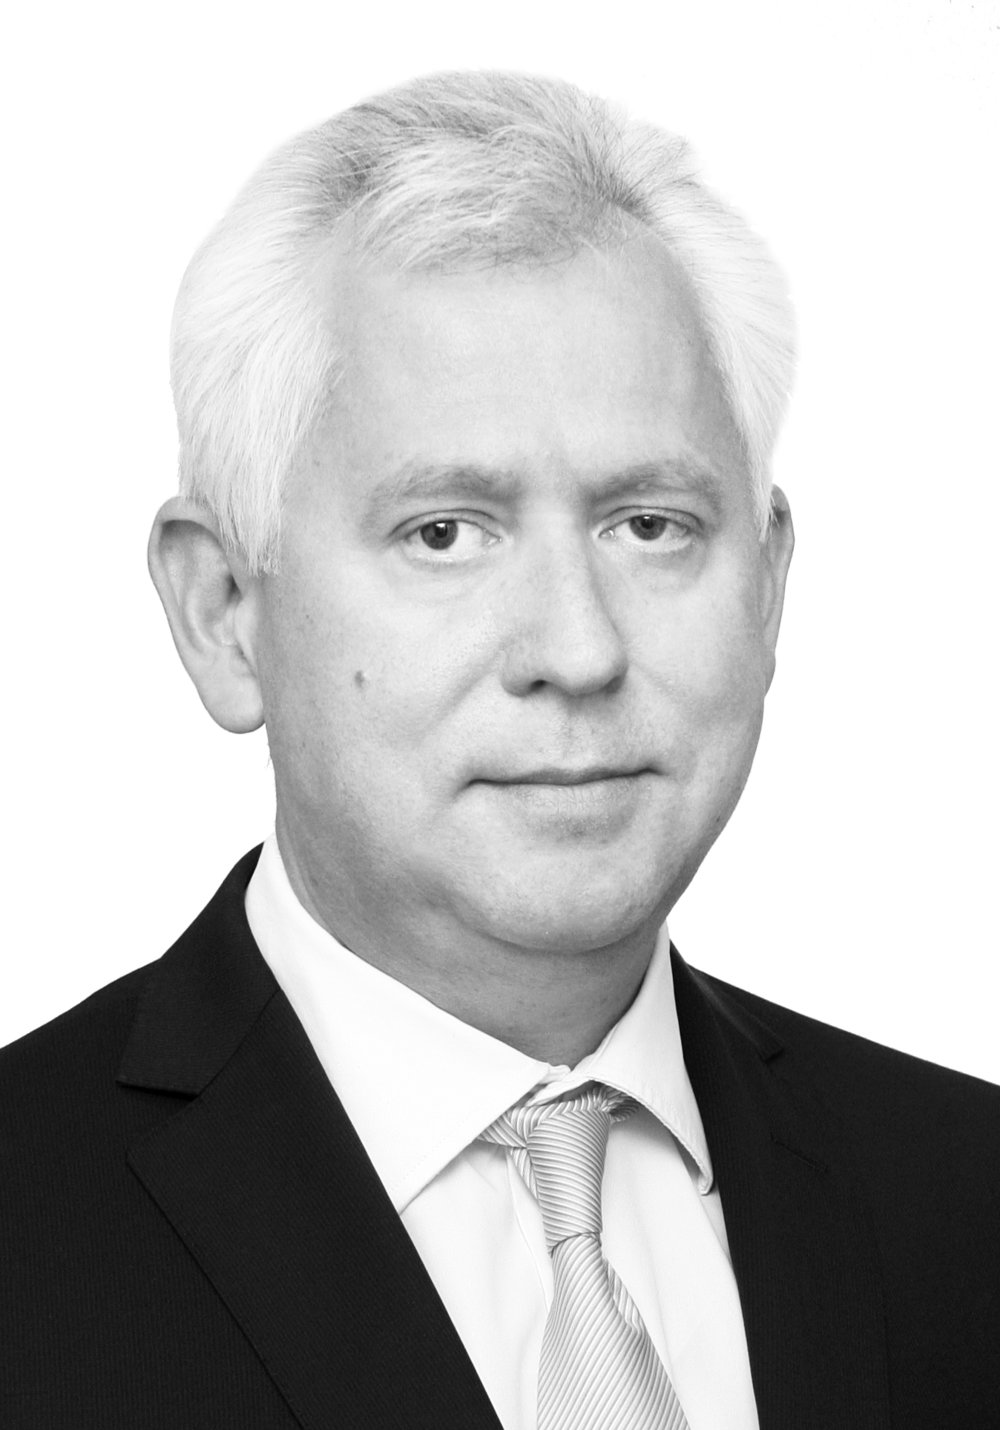 Sergei Voitishkin CIS Managing Partner Moscow, Russia   Areas of practice Mergers & Acquisitions Areas of expertise Corporate Counseling & Governance; Corporate Reorganizations; Private M&A; Public M&A